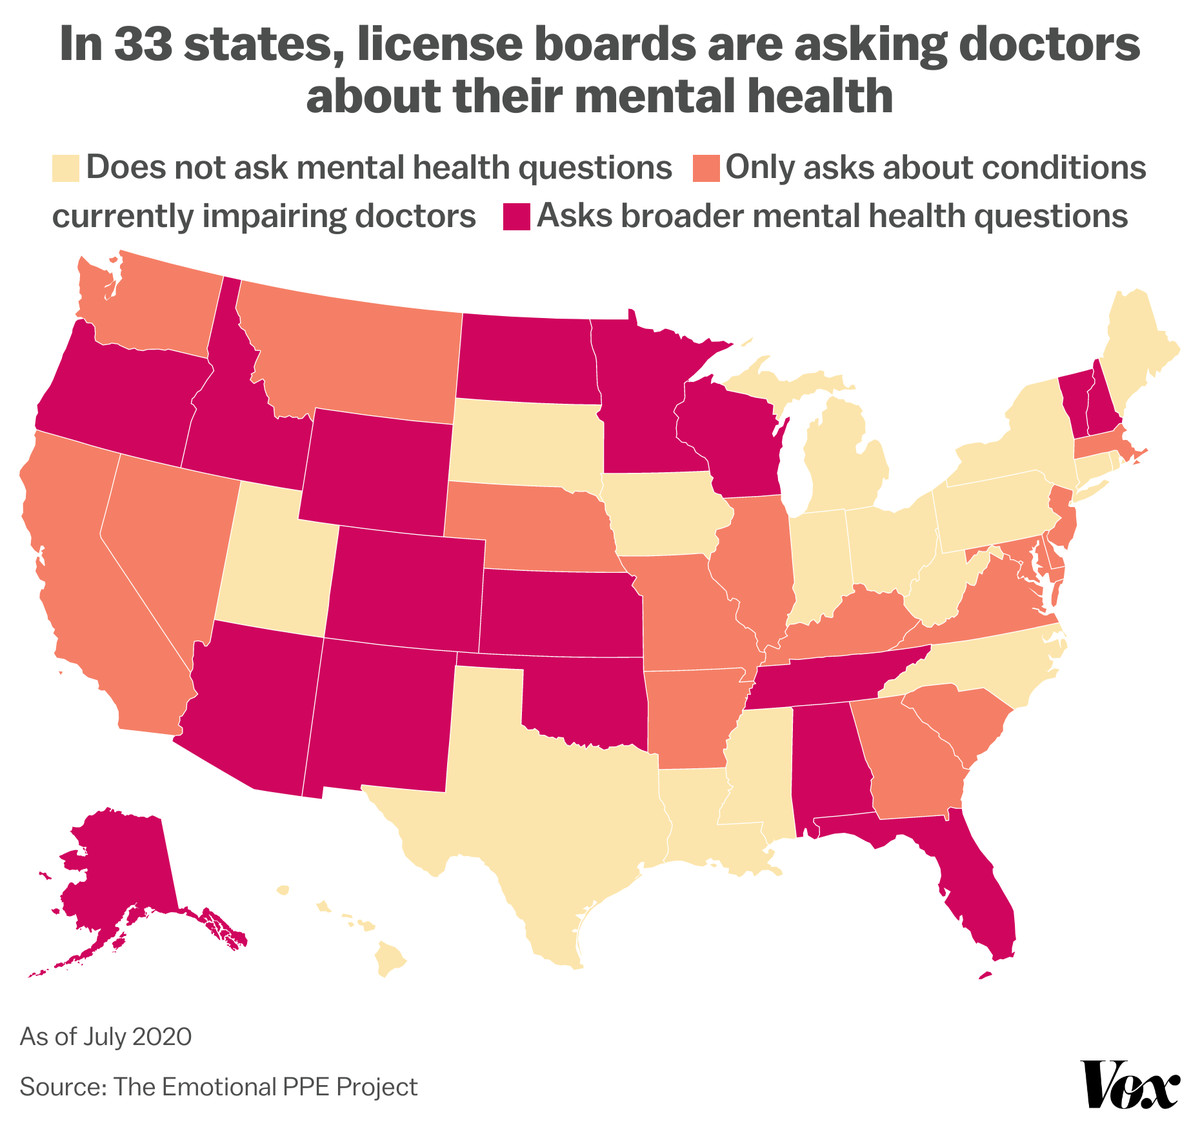 In 33 states, license boards are asking doctors about their mental health